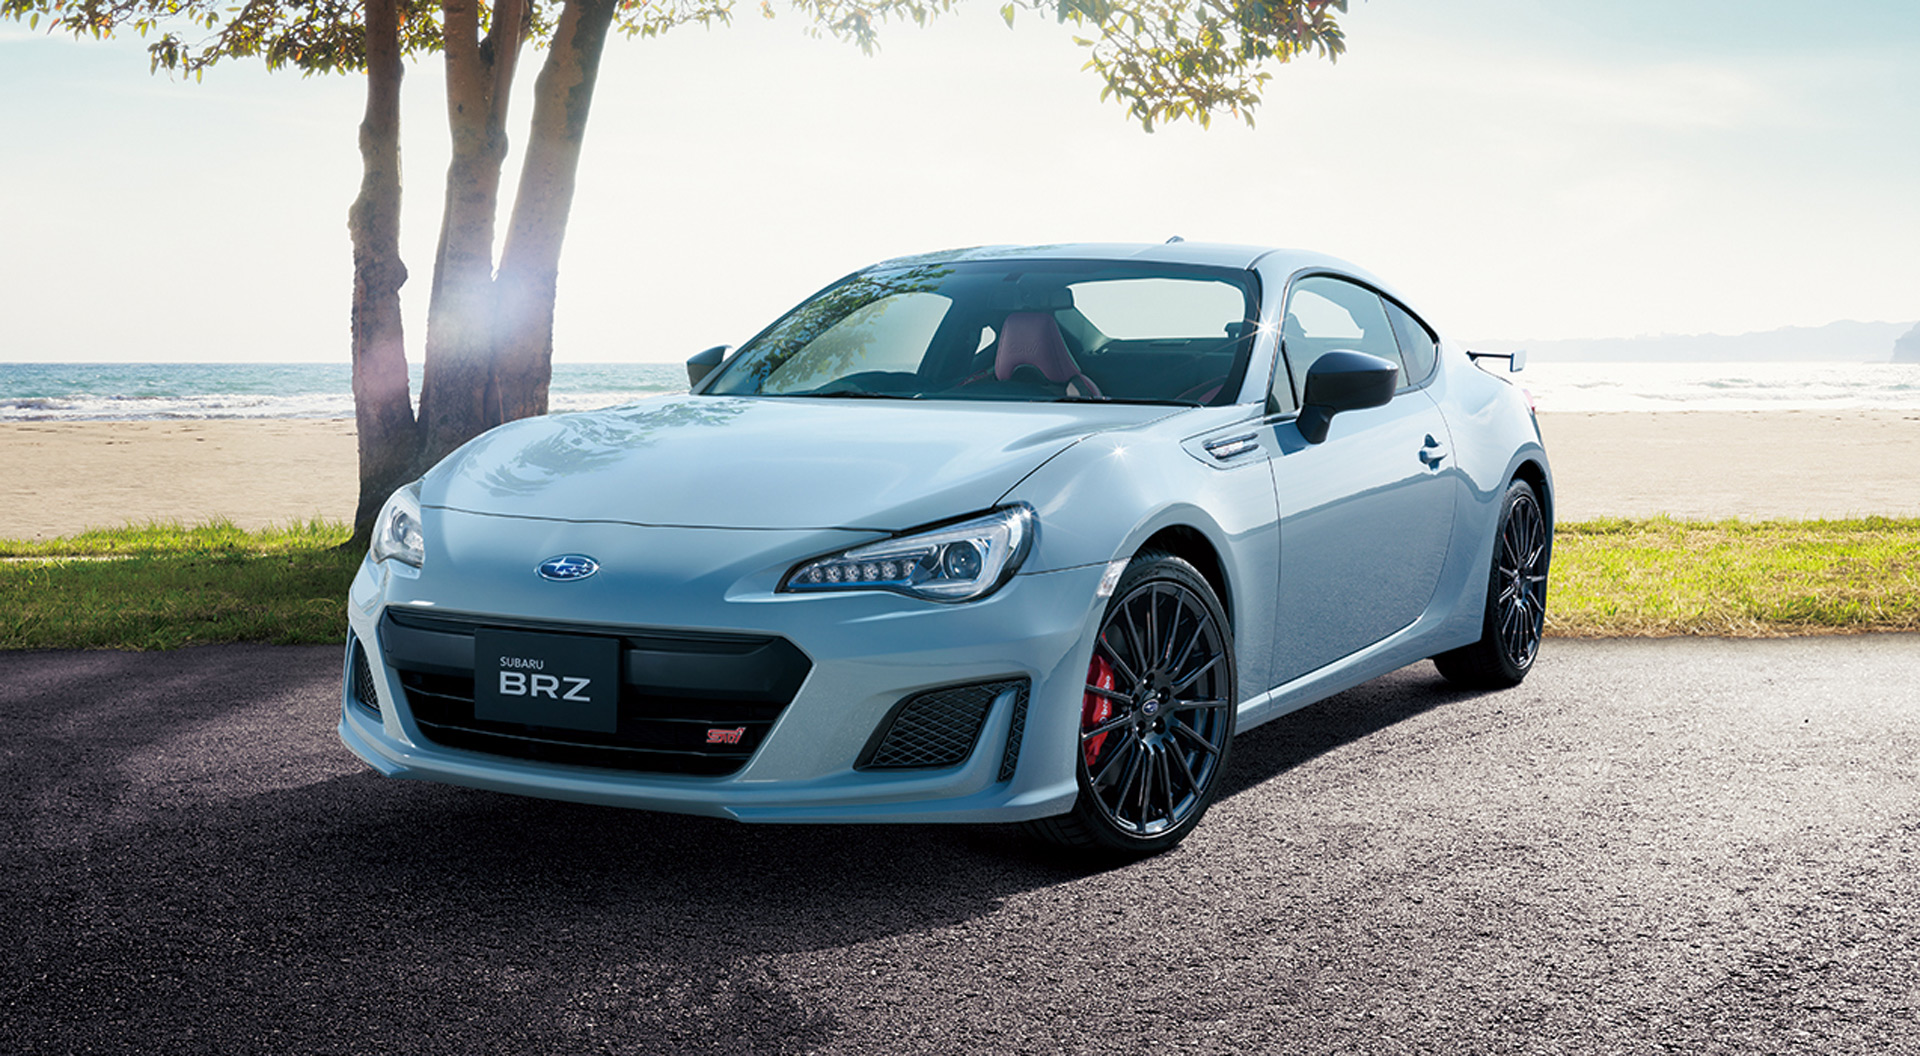 subaru brz sti sport confirmed for 2017 tokyo motor show. Black Bedroom Furniture Sets. Home Design Ideas